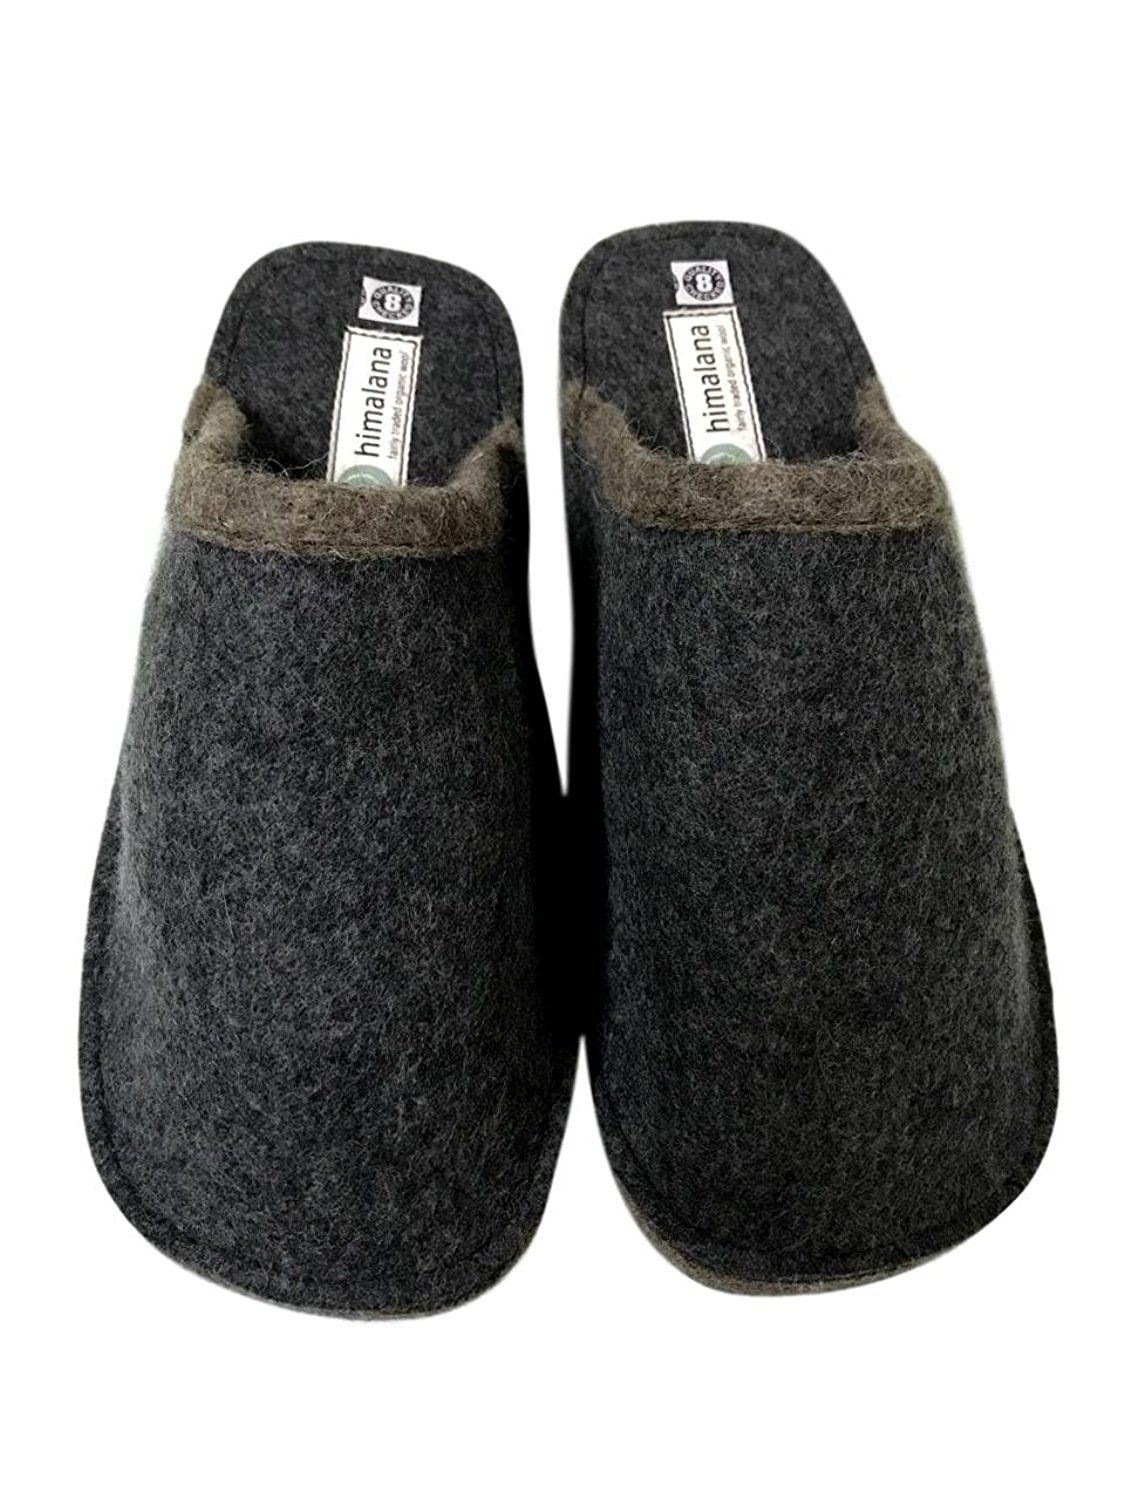 Ladies Mules Womens Soft Suede Slippers Indoor Shoes with Rubber Sole